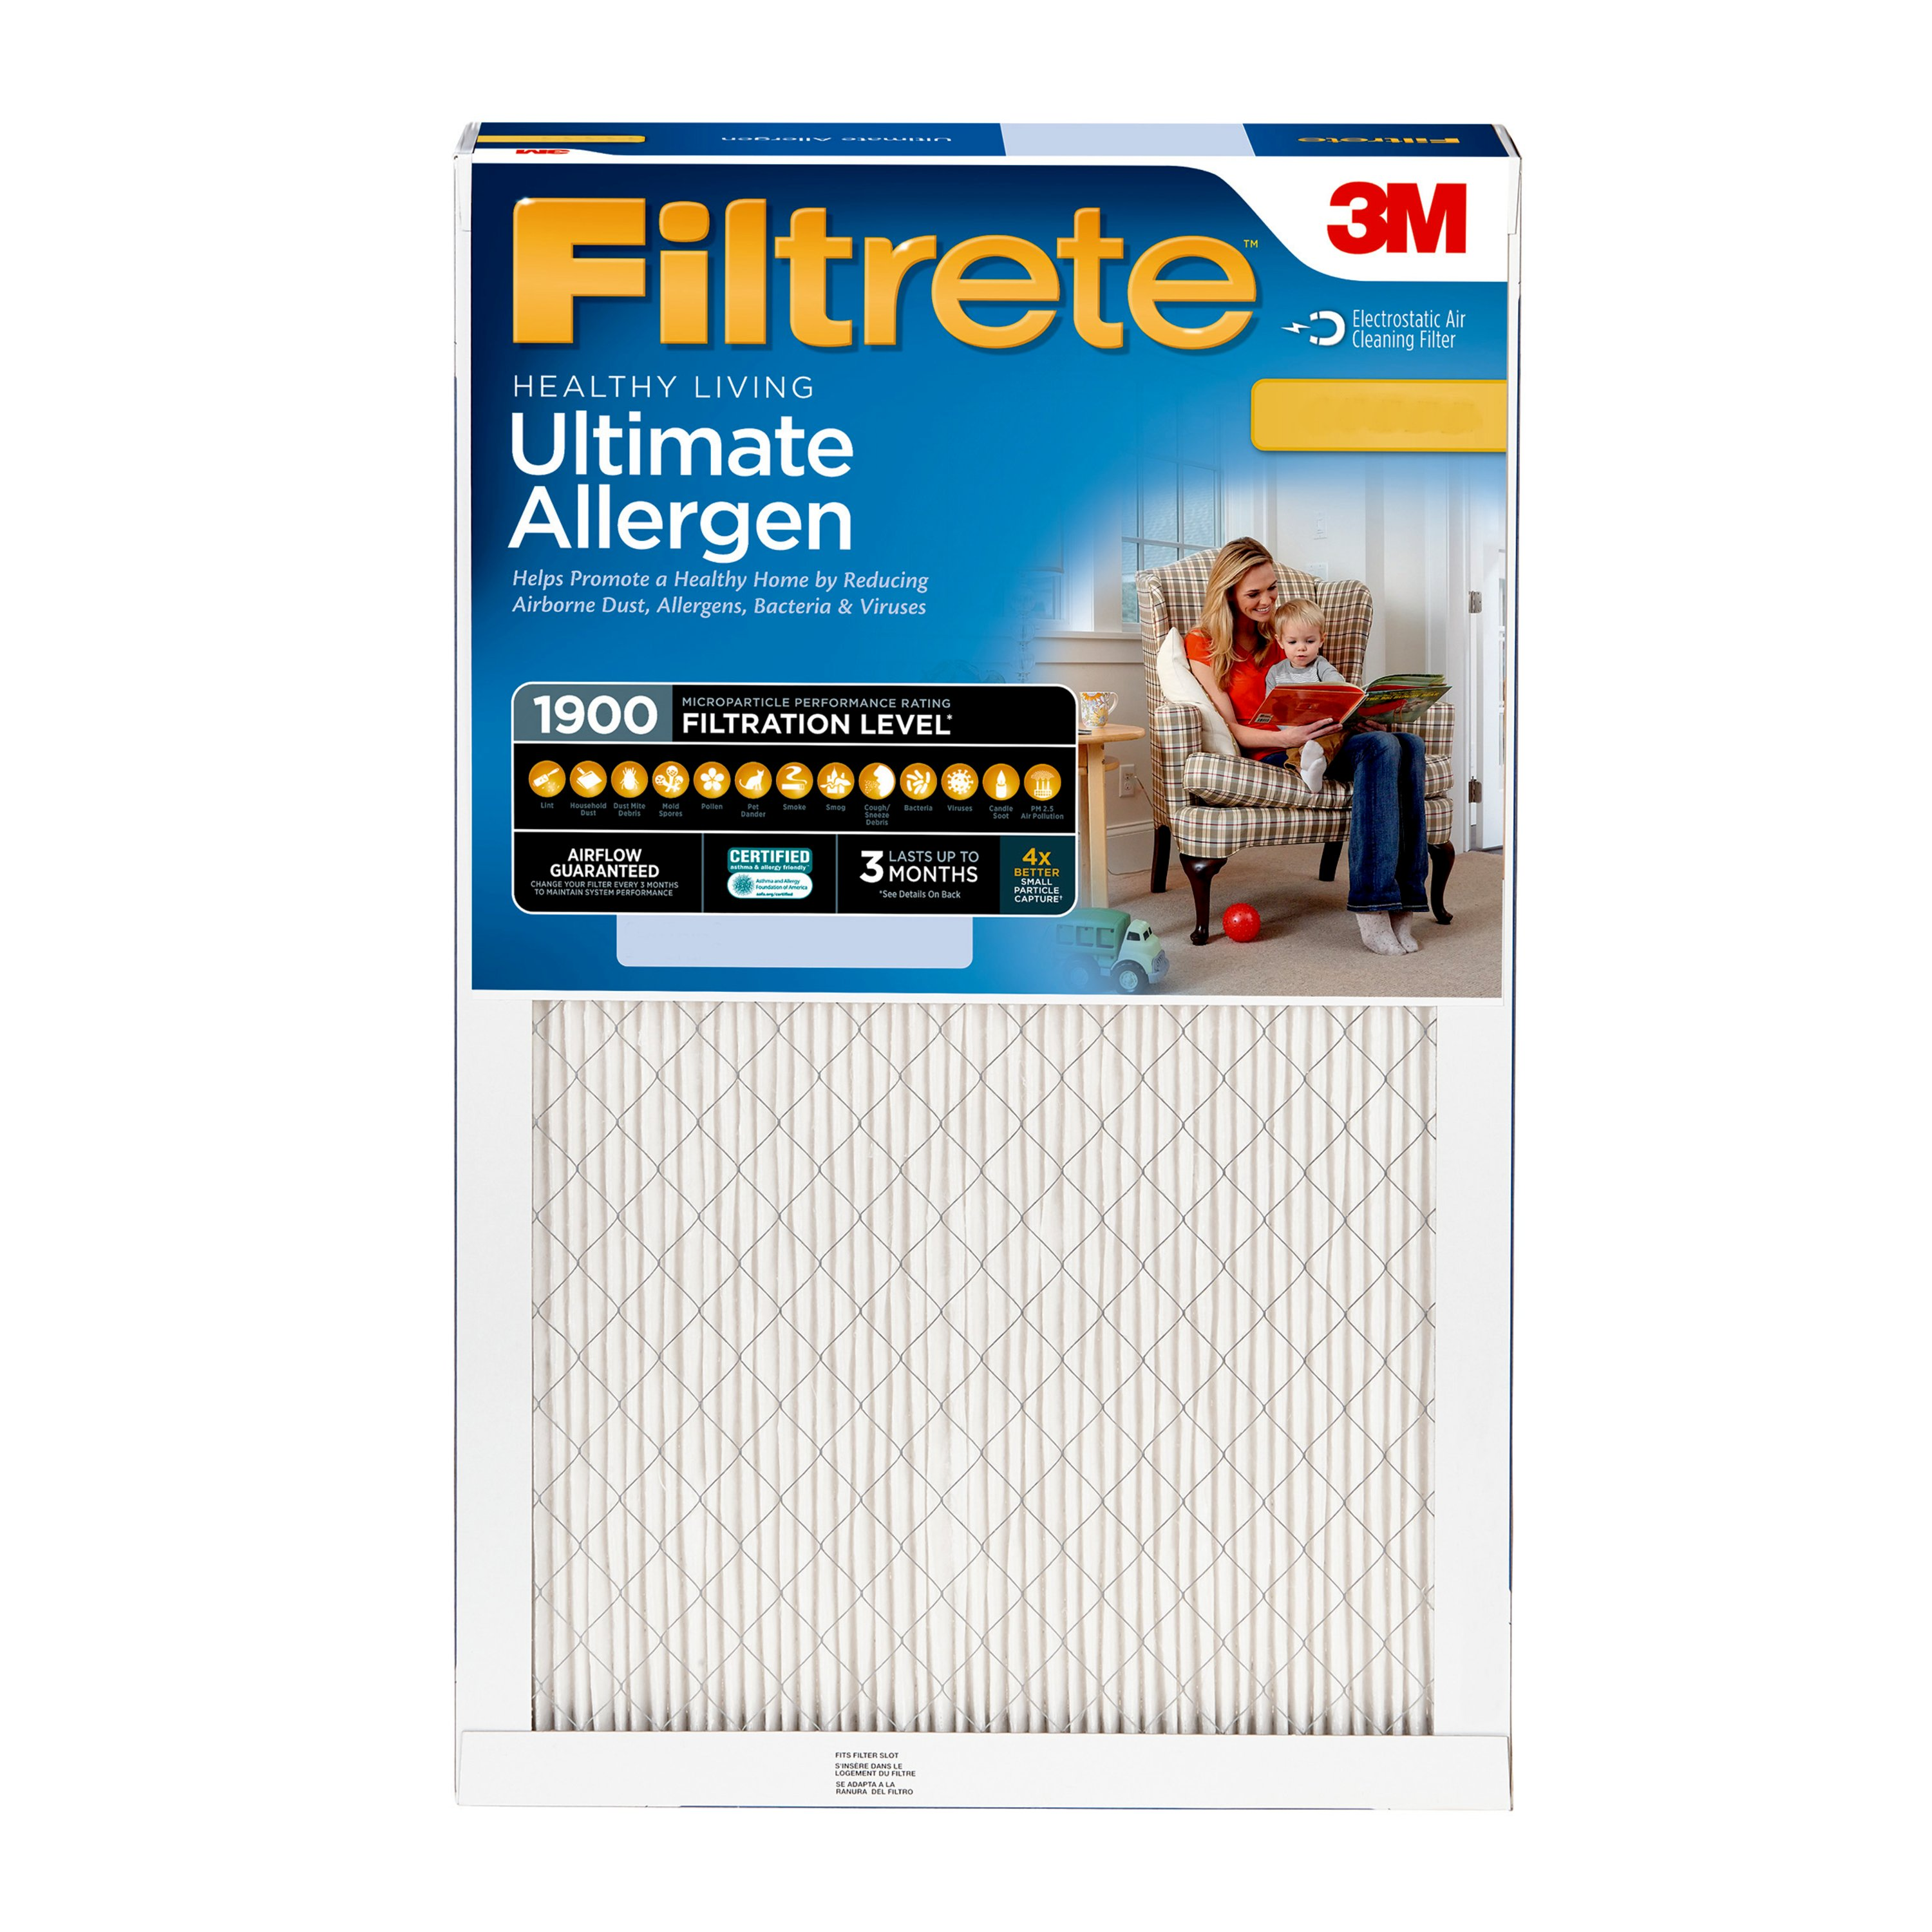 Filtrete Healthy Living Ultimate Allergen Reduction HVAC Furnace Air Filter, 1900 MPR, 16 x 25 x 1, 1 Filter by 3M COMPANY